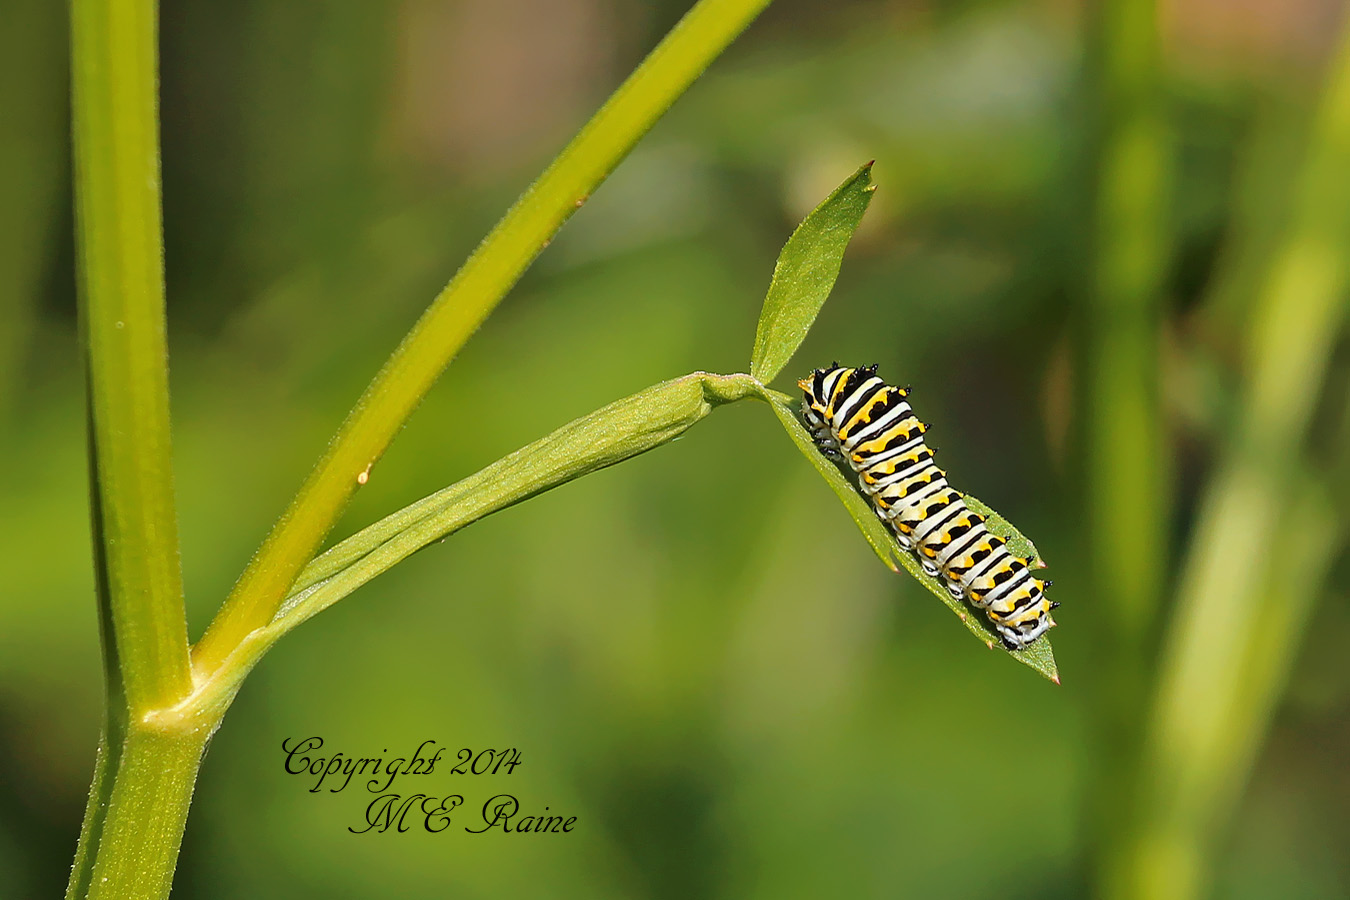 072714 FTD I Caterpillar, Black Swallowtail 001aEf RchrdDKorte Park Mdwlnds NJ 072714 OK FLICKR